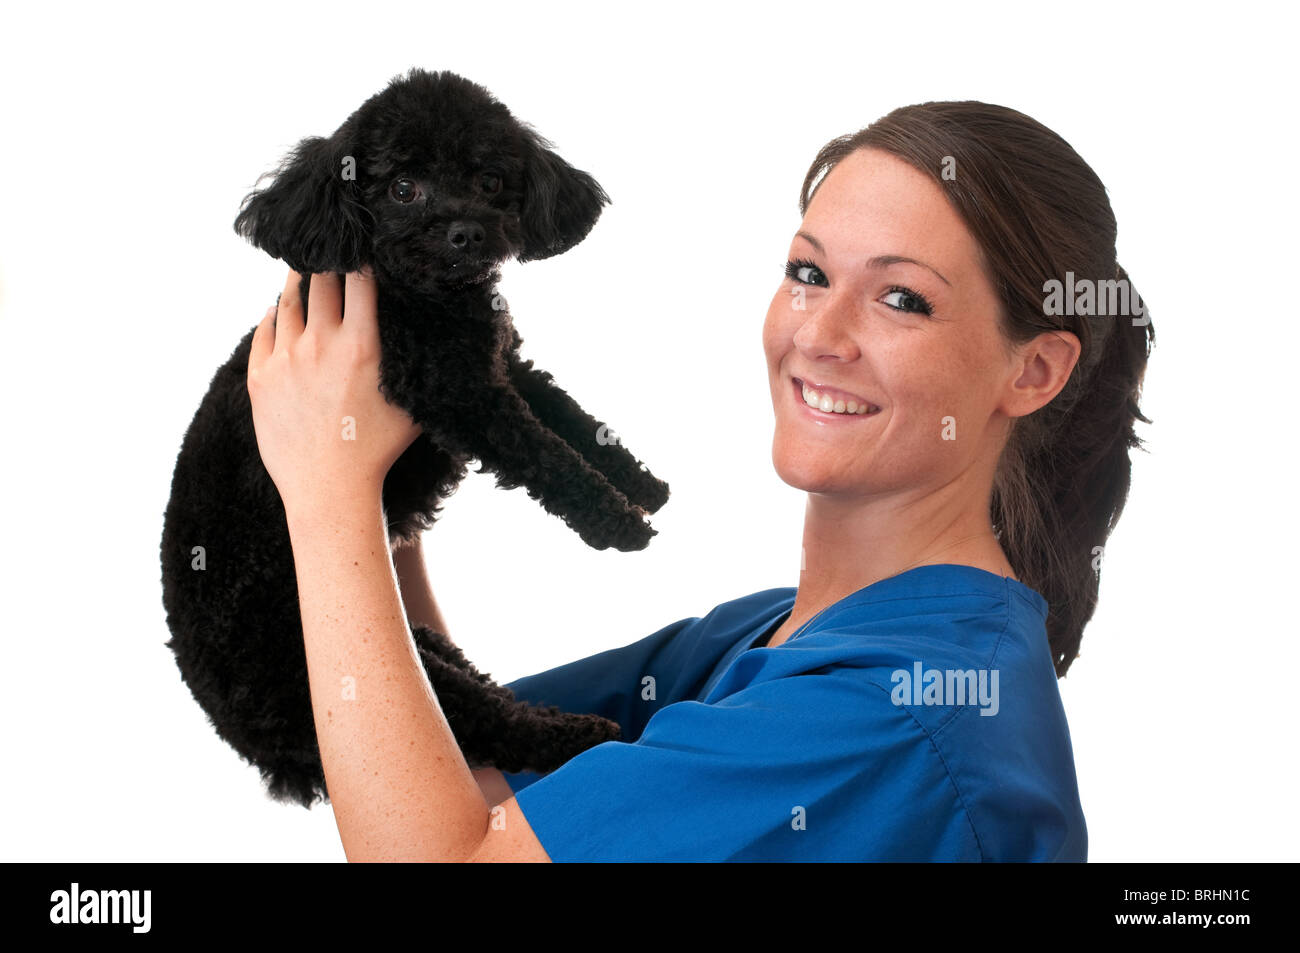 Veterinary assistant holding pet poodle isolated on white background. - Stock Image